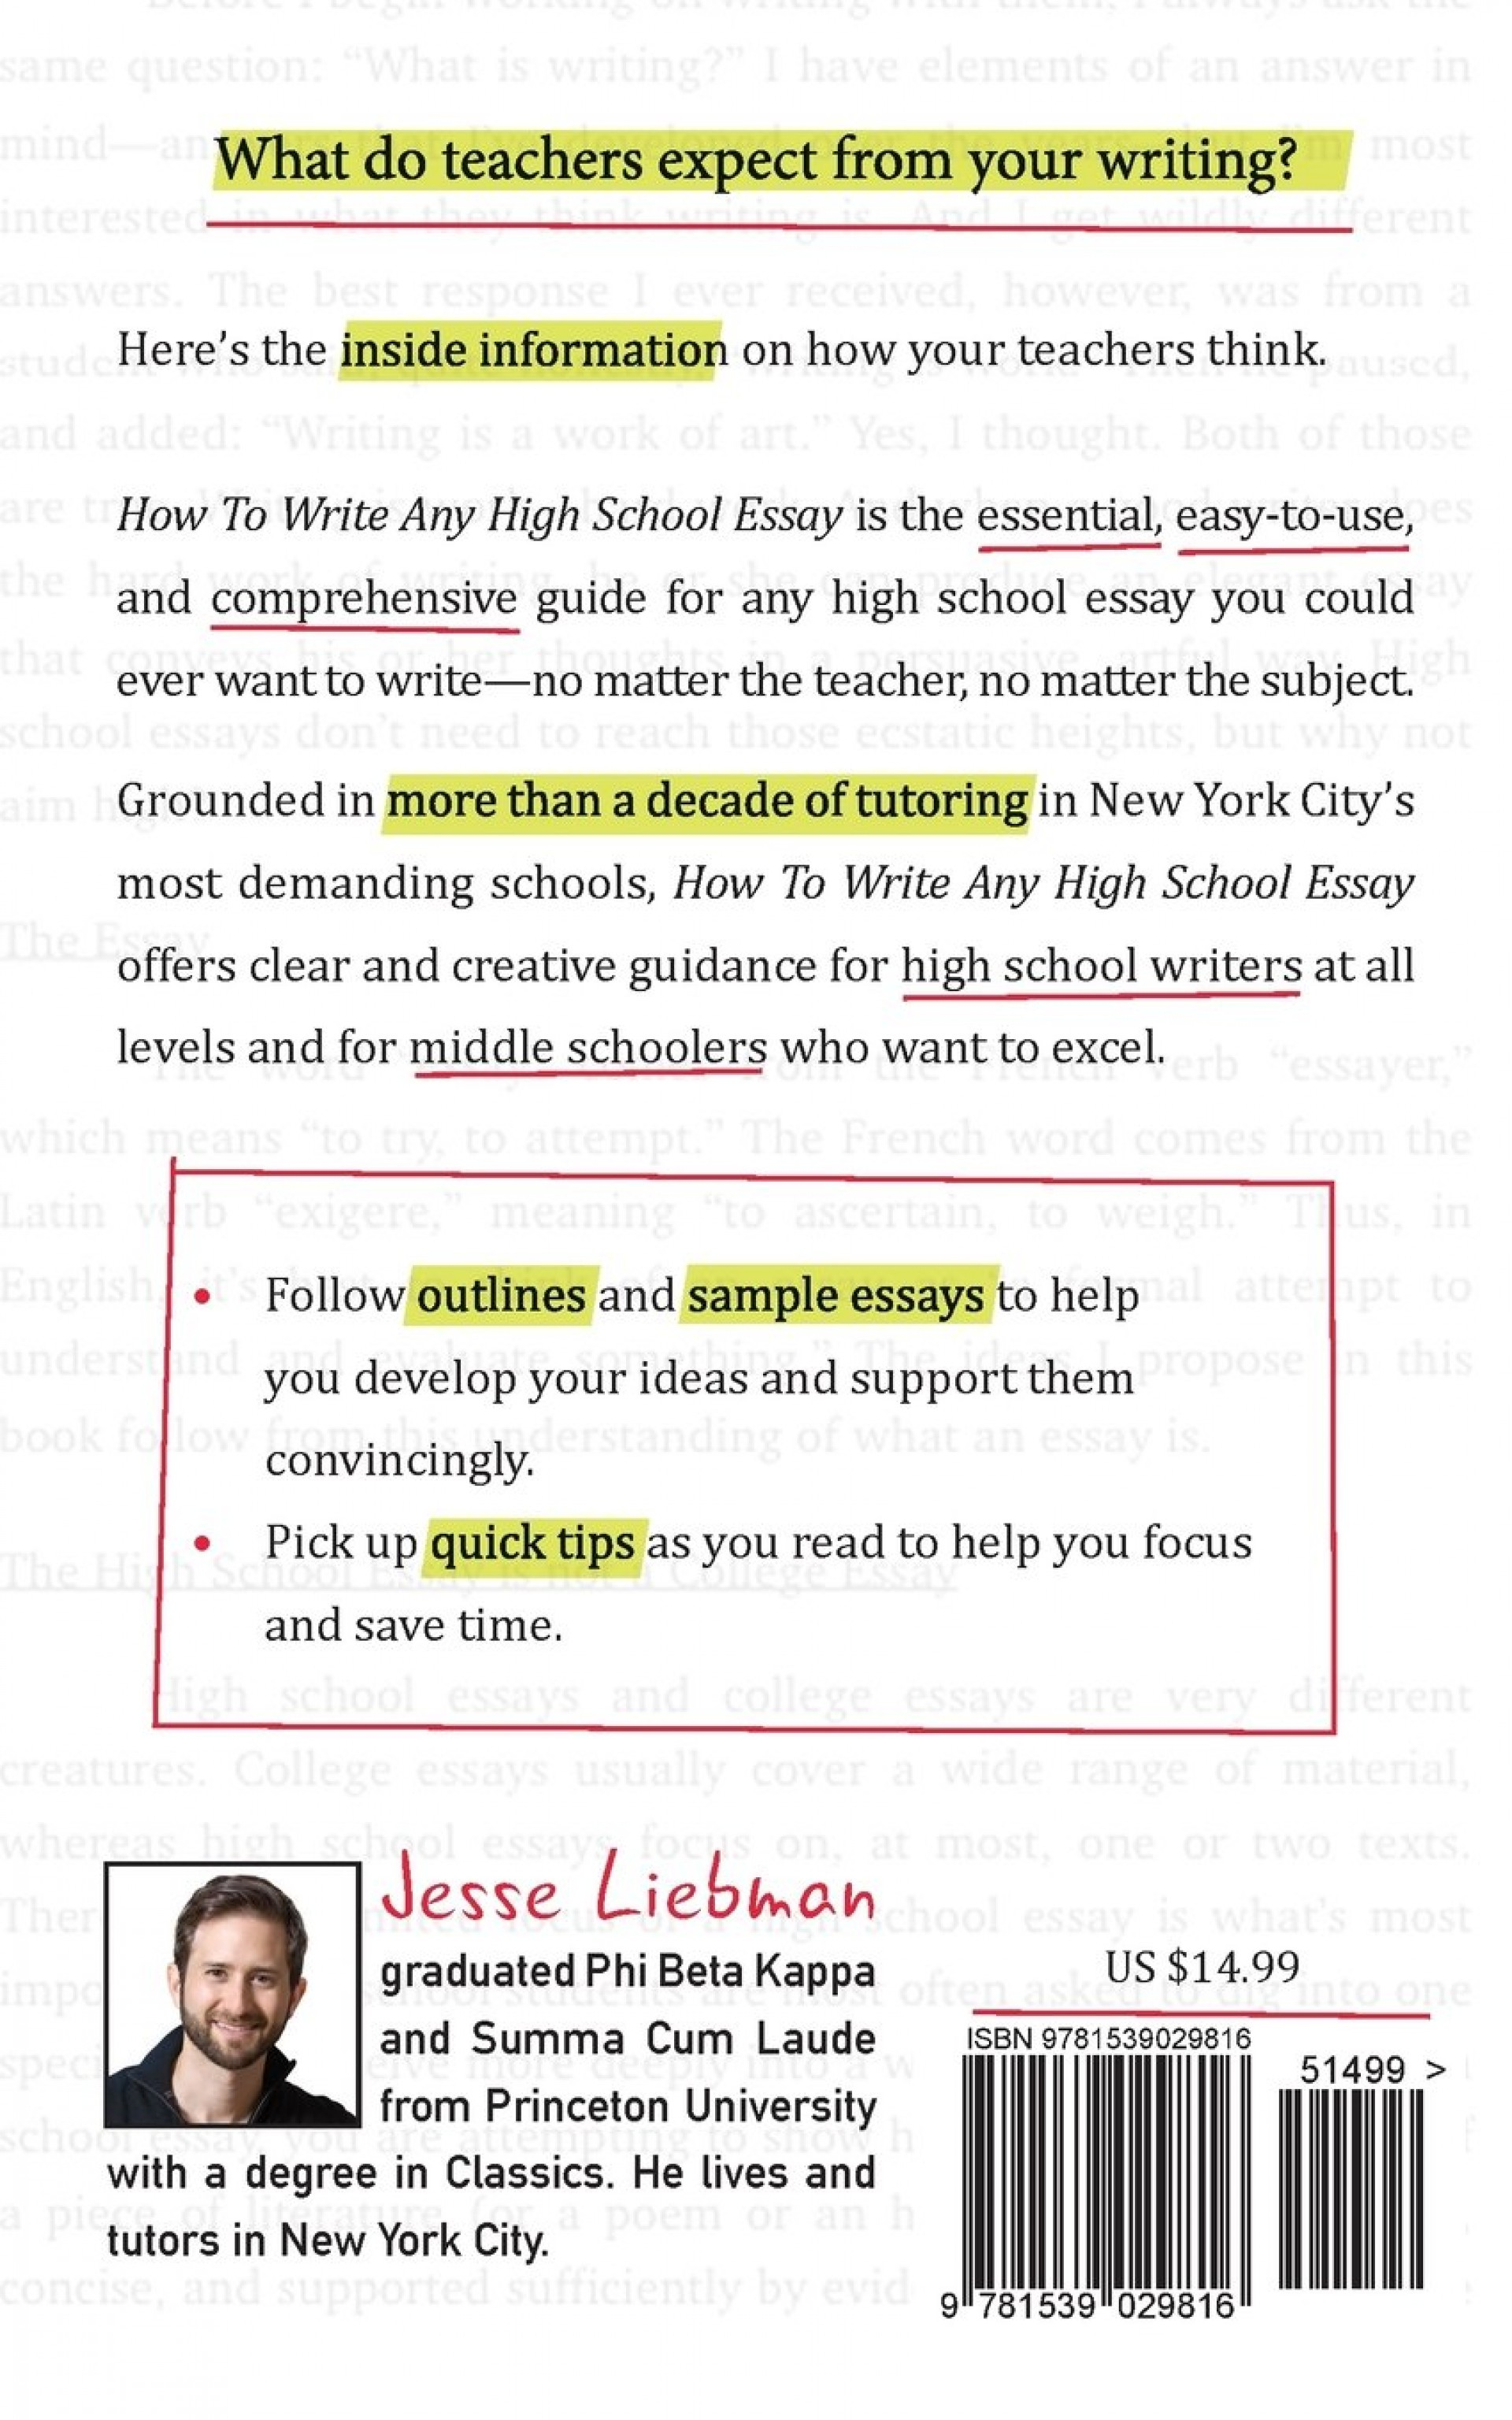 020 High School Essay 71baet3vxyl Amazing Examples Applications Informative Outline Writing Prompts Persuasive 1920